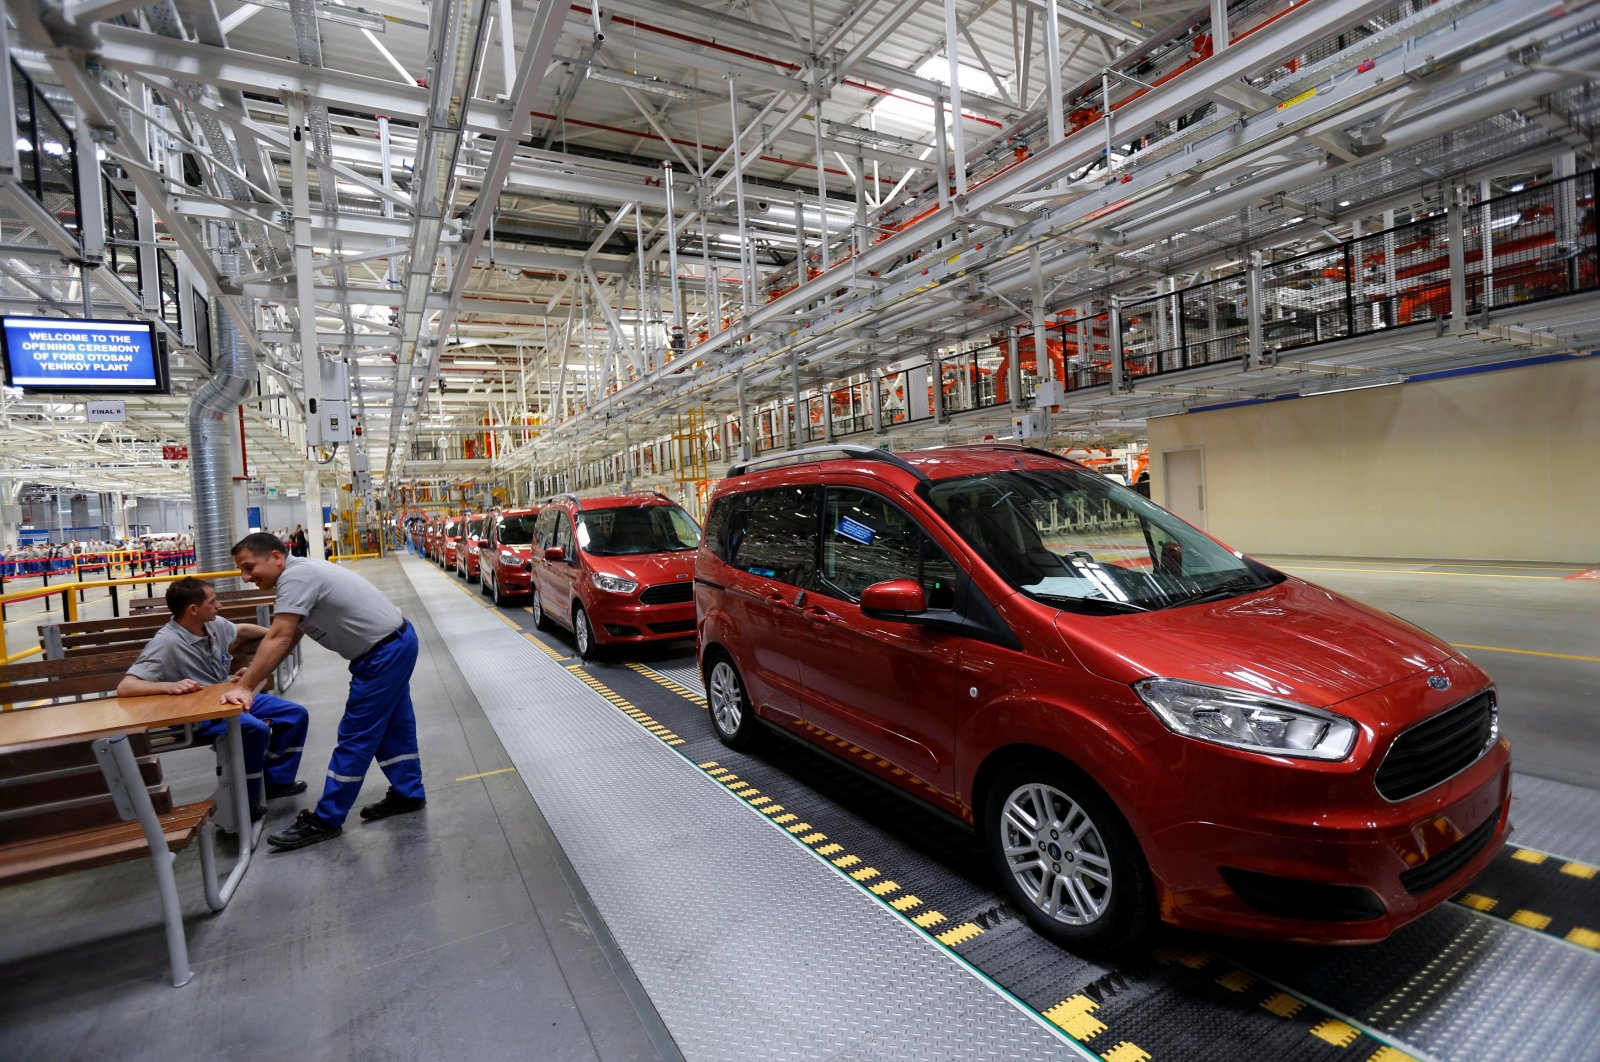 Ford Tourneo Courier light commercial vehicles are pictured at the Ford Otosan Yeniköy Factory in Kocaeli province, northwestern Turkey, May 22, 2014. (Reuters Photo)